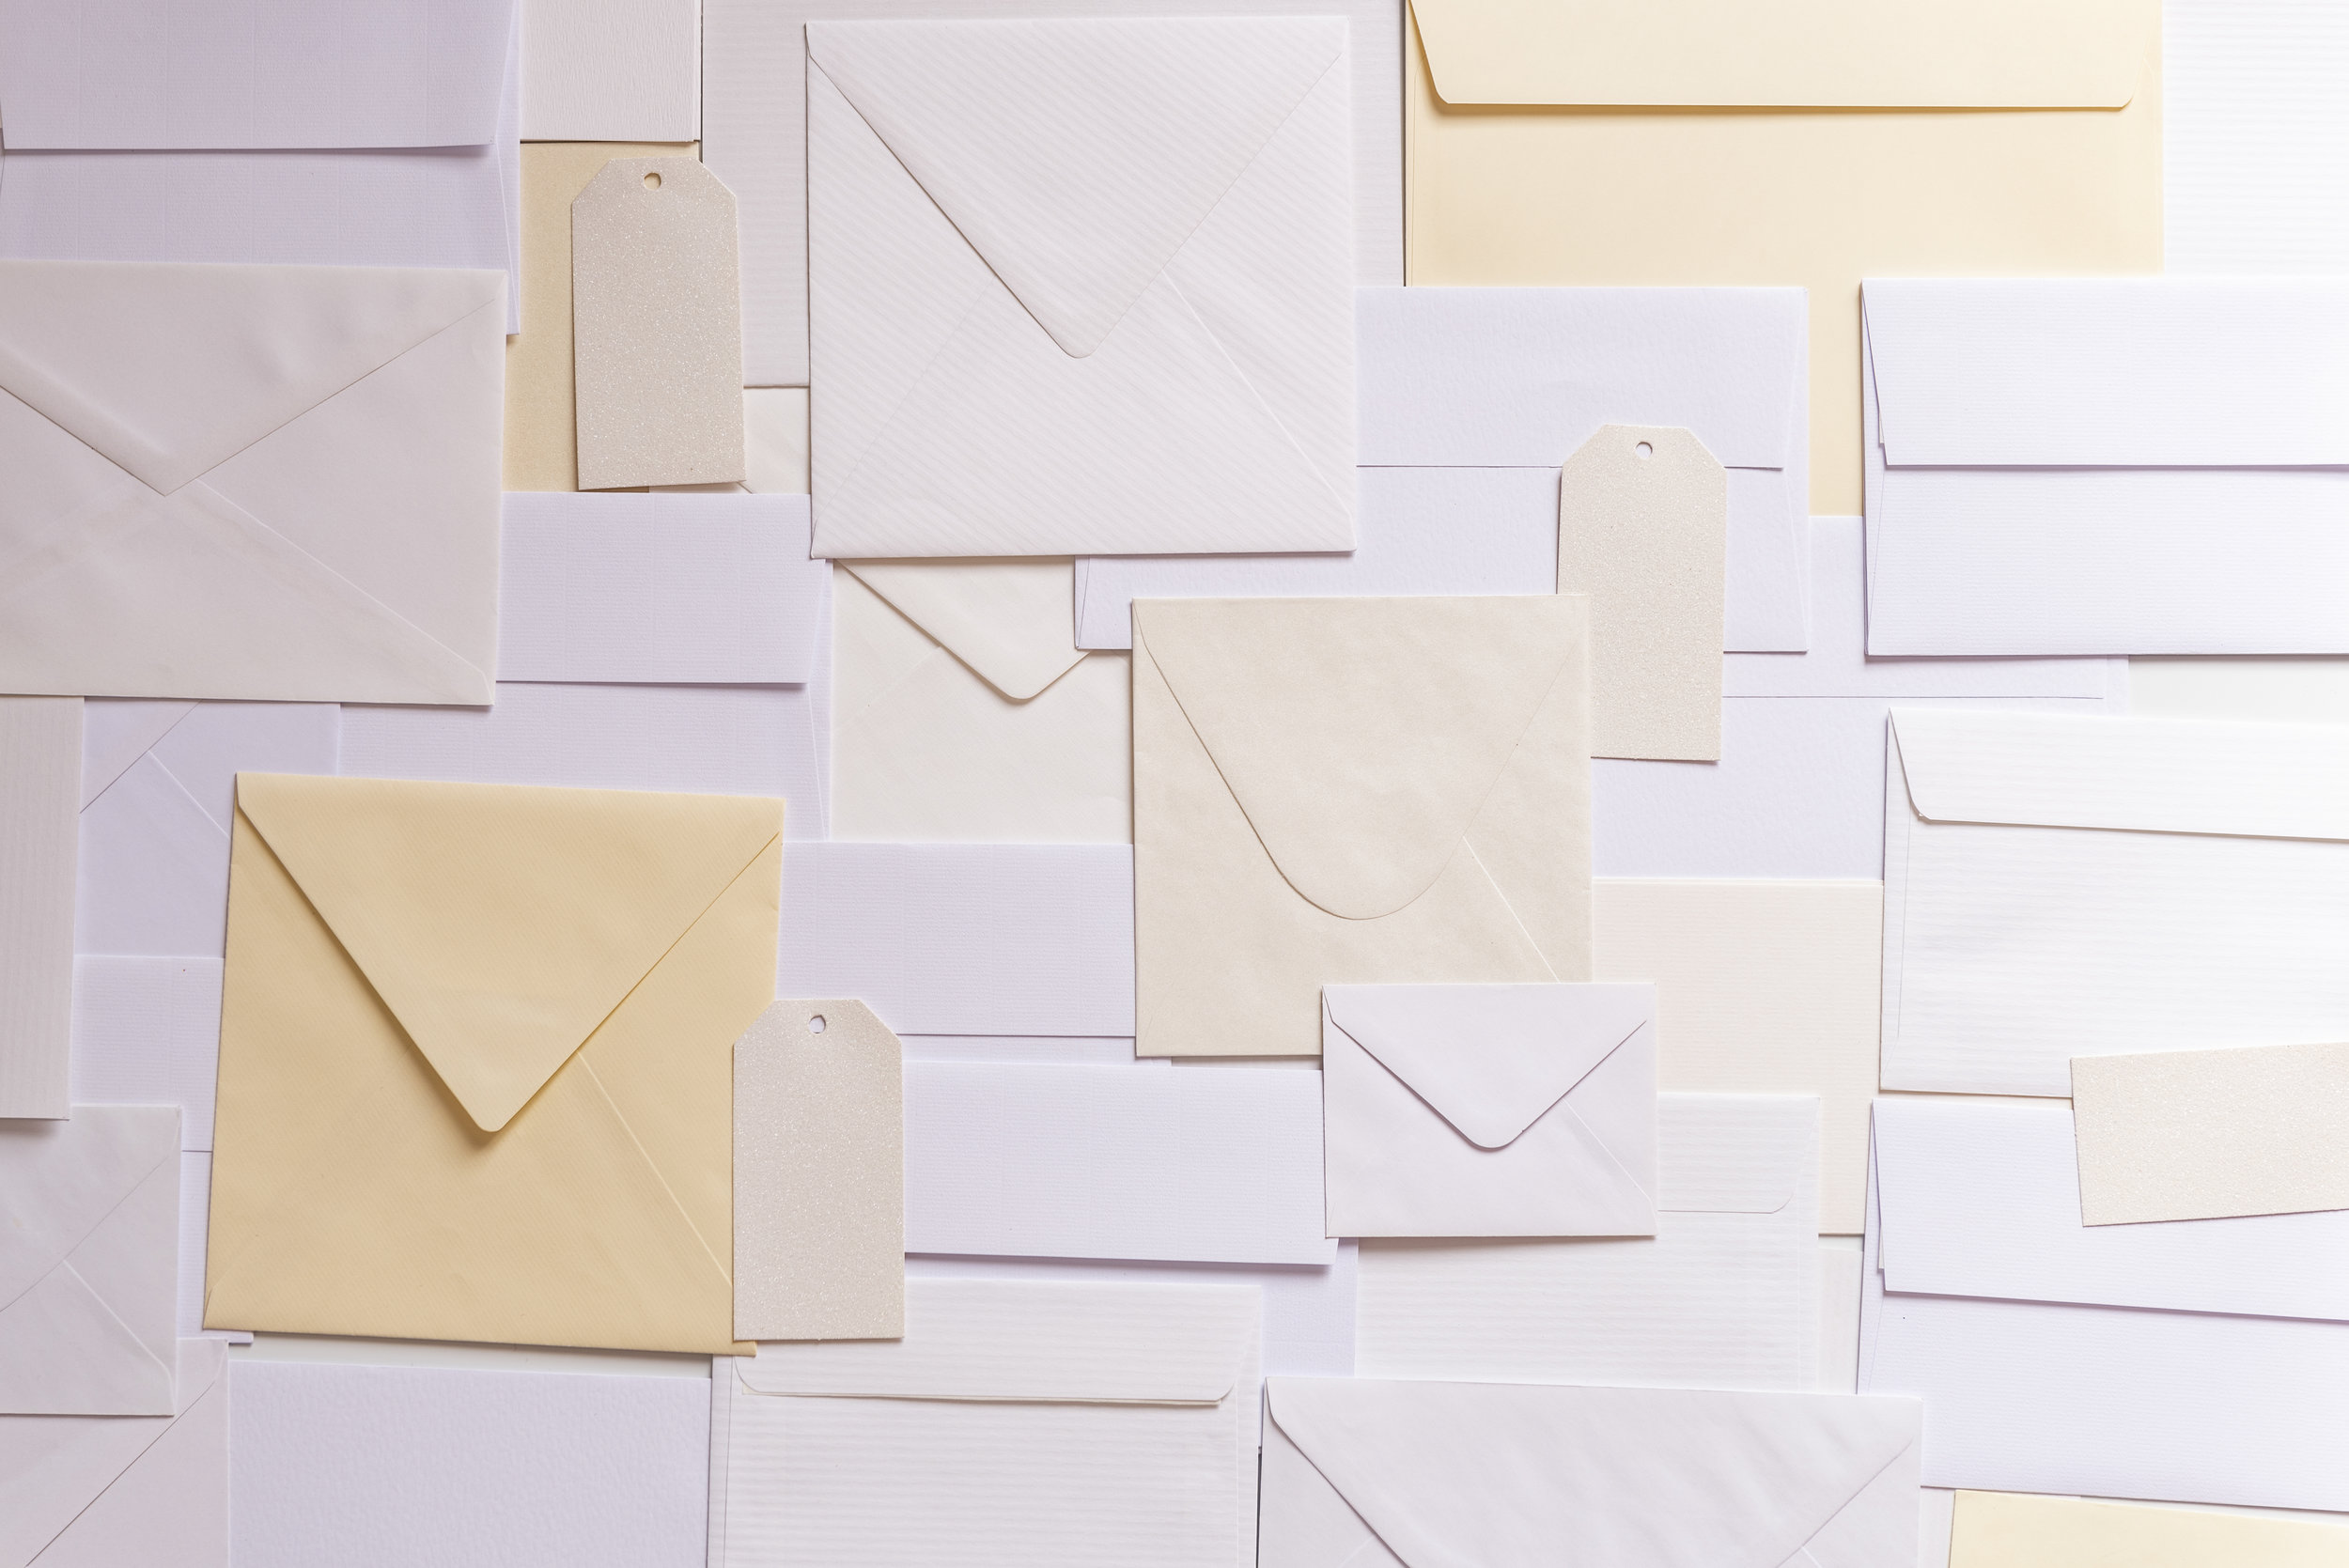 Join Mailing List - Infrequent emails, we promise!